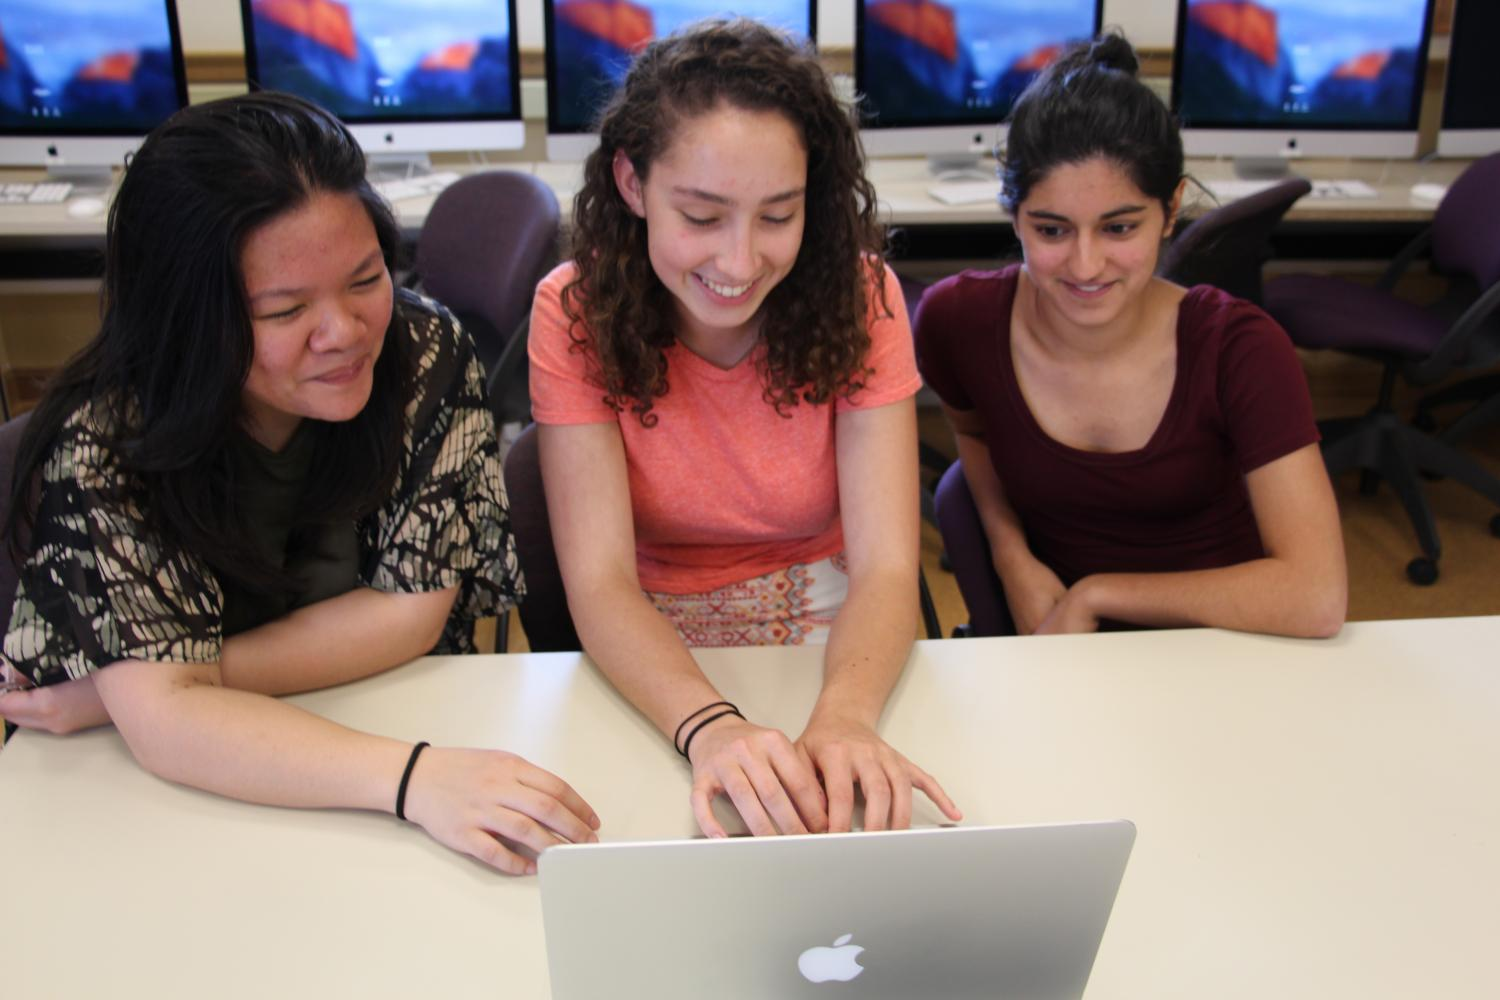 New Editors-in-Chief, Lei Anne Rabeje and Olivia Weinberg, and Online Editor Alexi Sandhu prepare for their first issue in leadership positions.